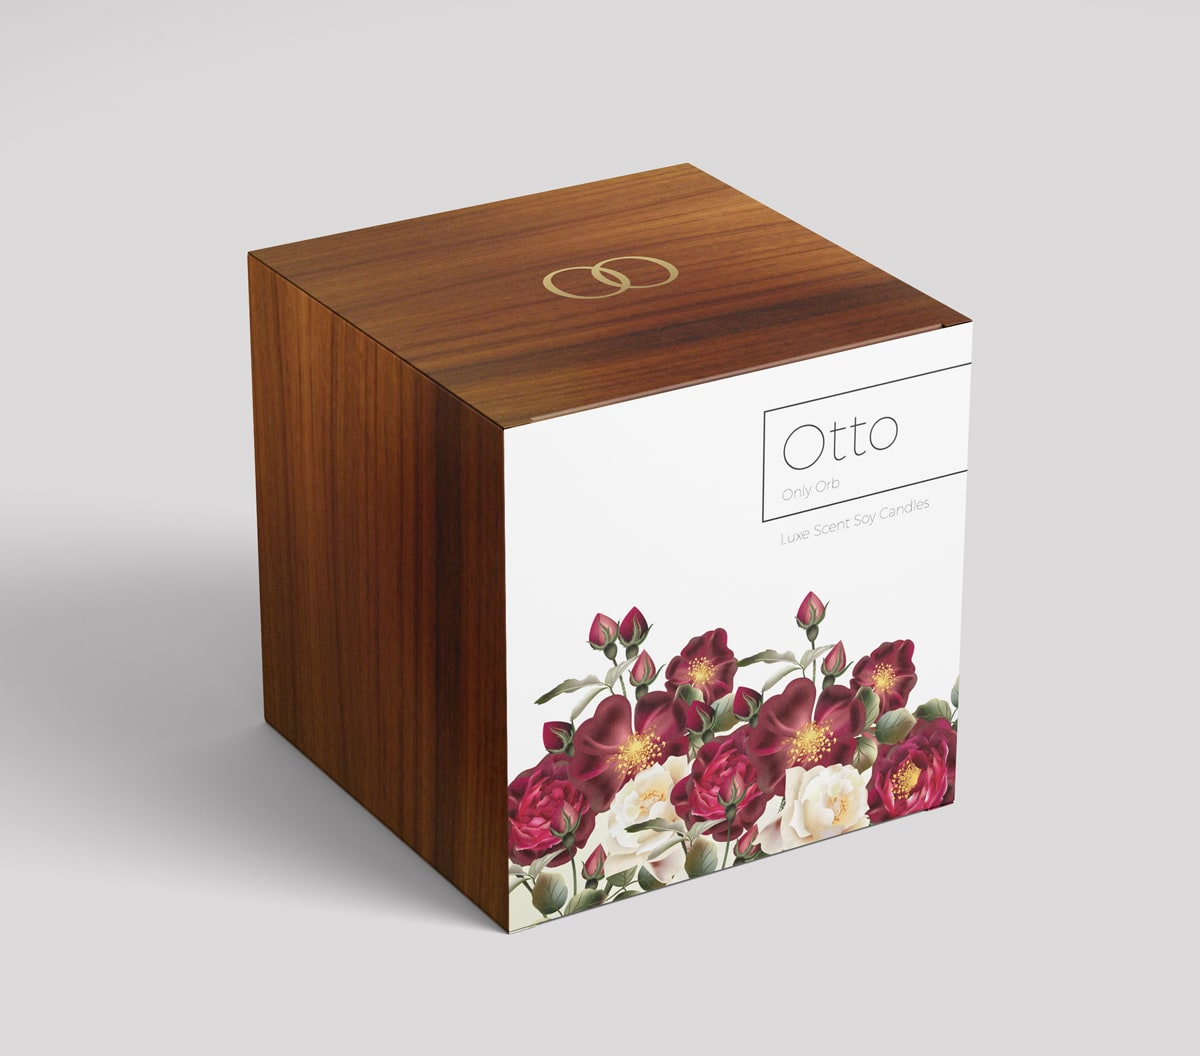 Box visualisation with flowers for Otto candle